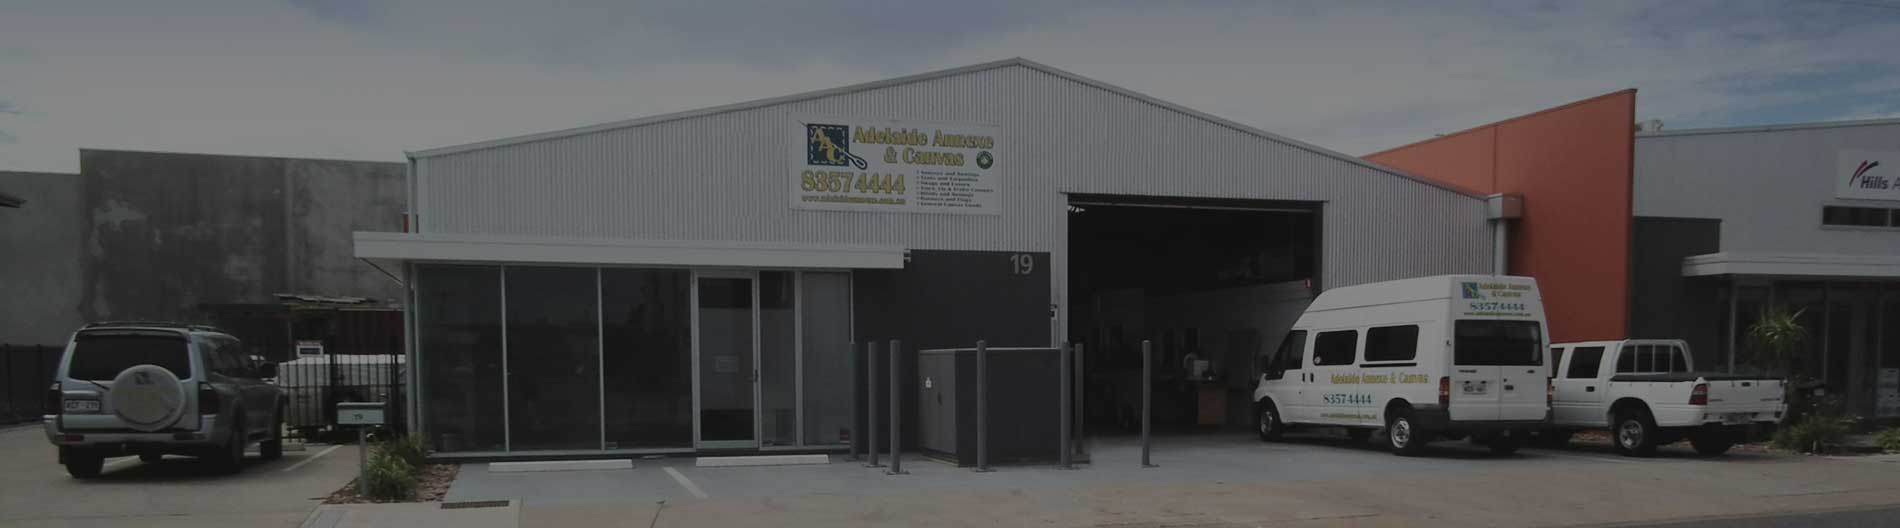 Adelaide Annexe Shop Front